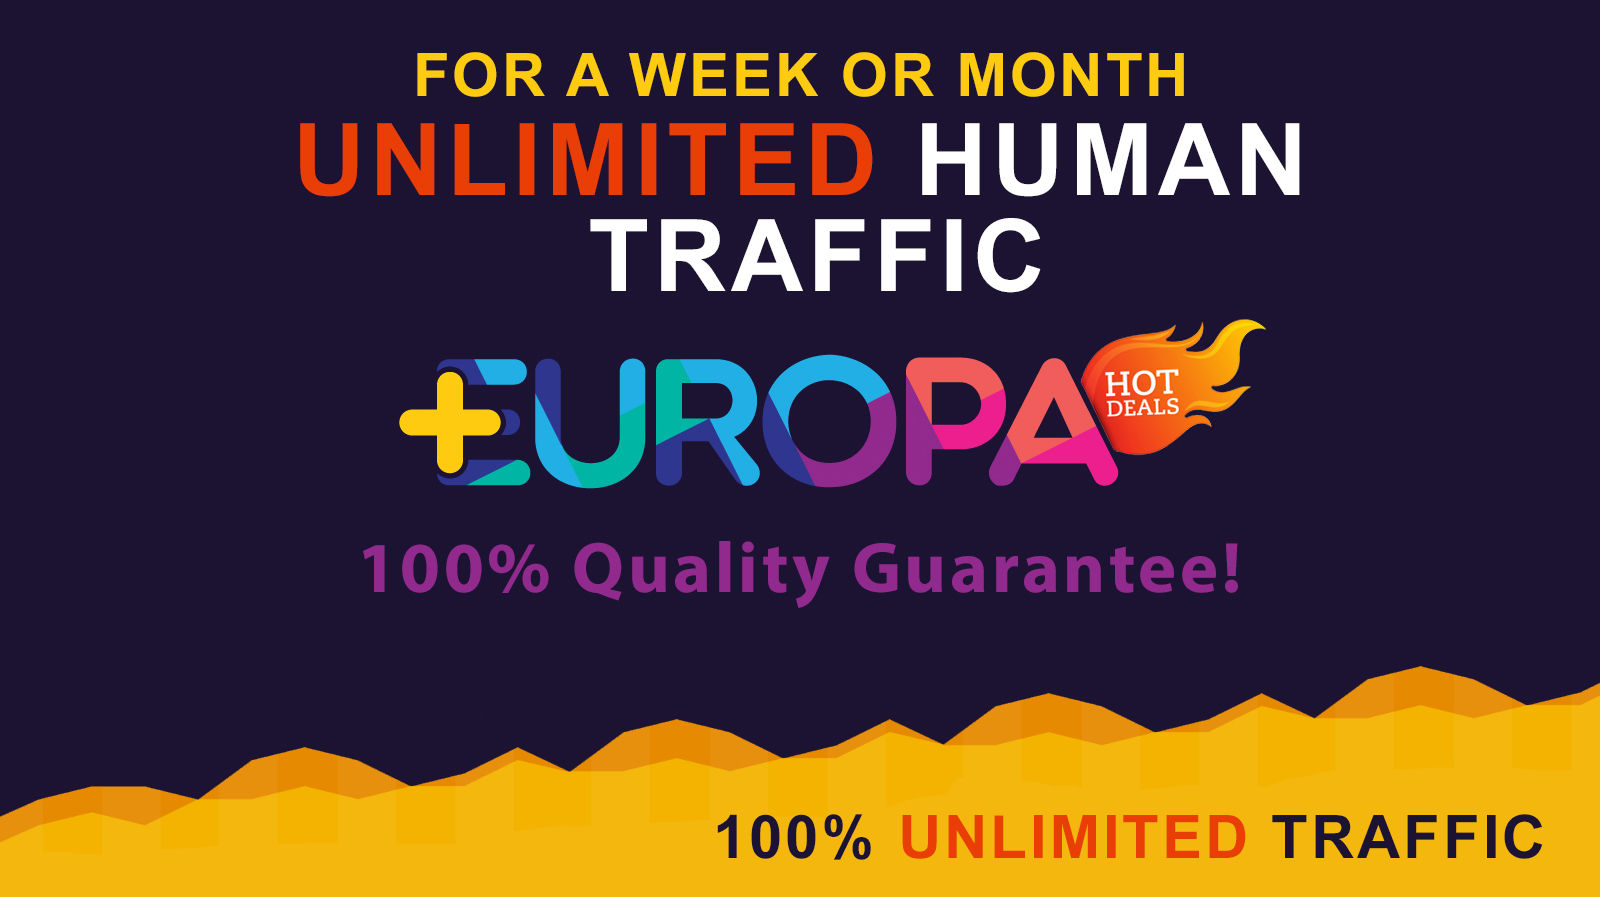 UNLIMITED HUMAN TRAFFIC FOR A WEEK OR MONTH PLUS BONUS